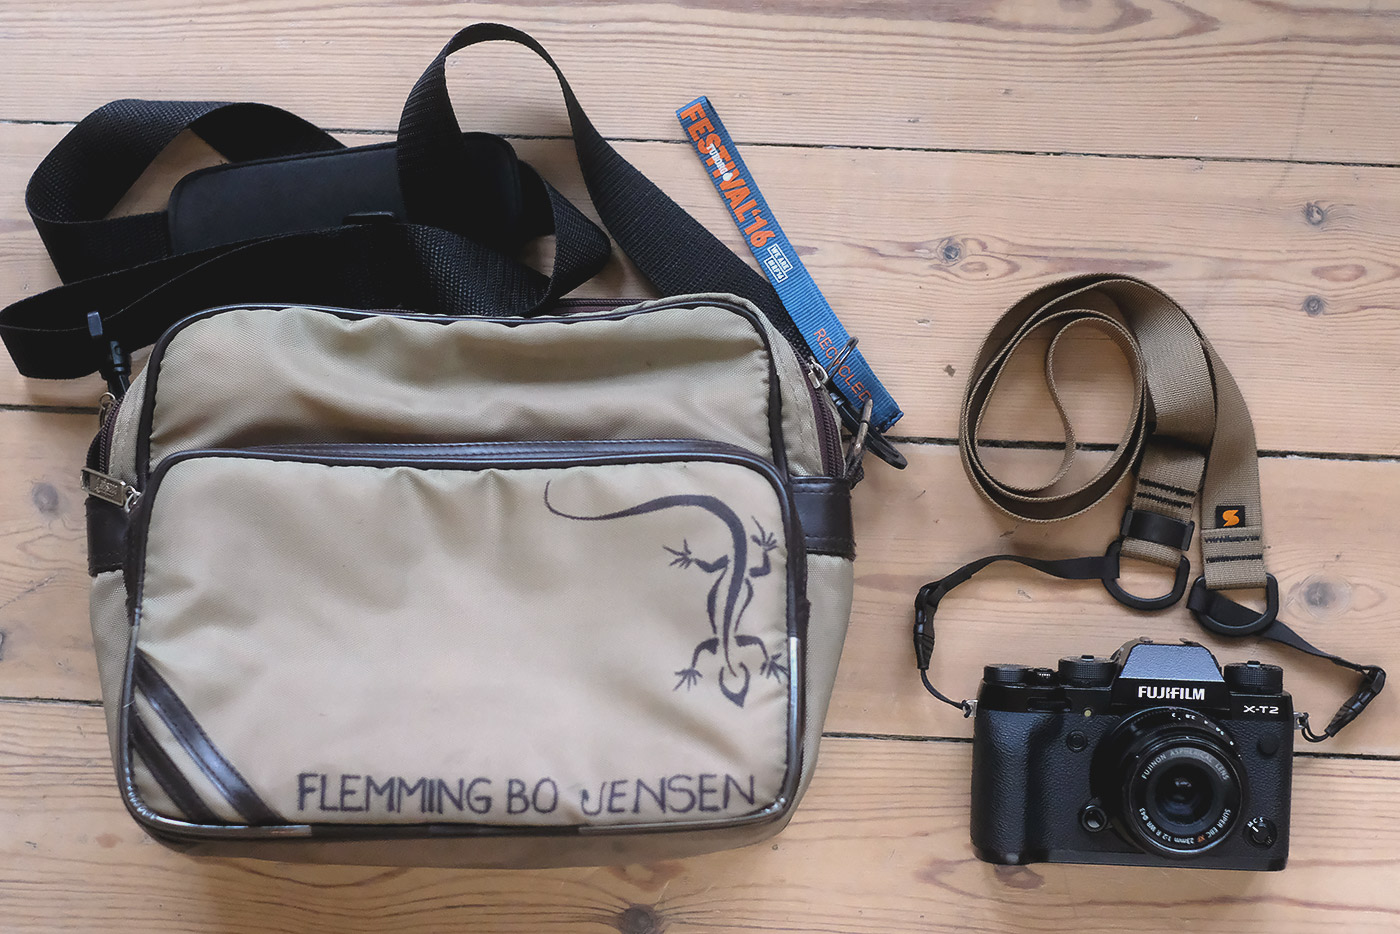 Simplr Strap - a good and simple camera strap - Flemming Bo Jensen